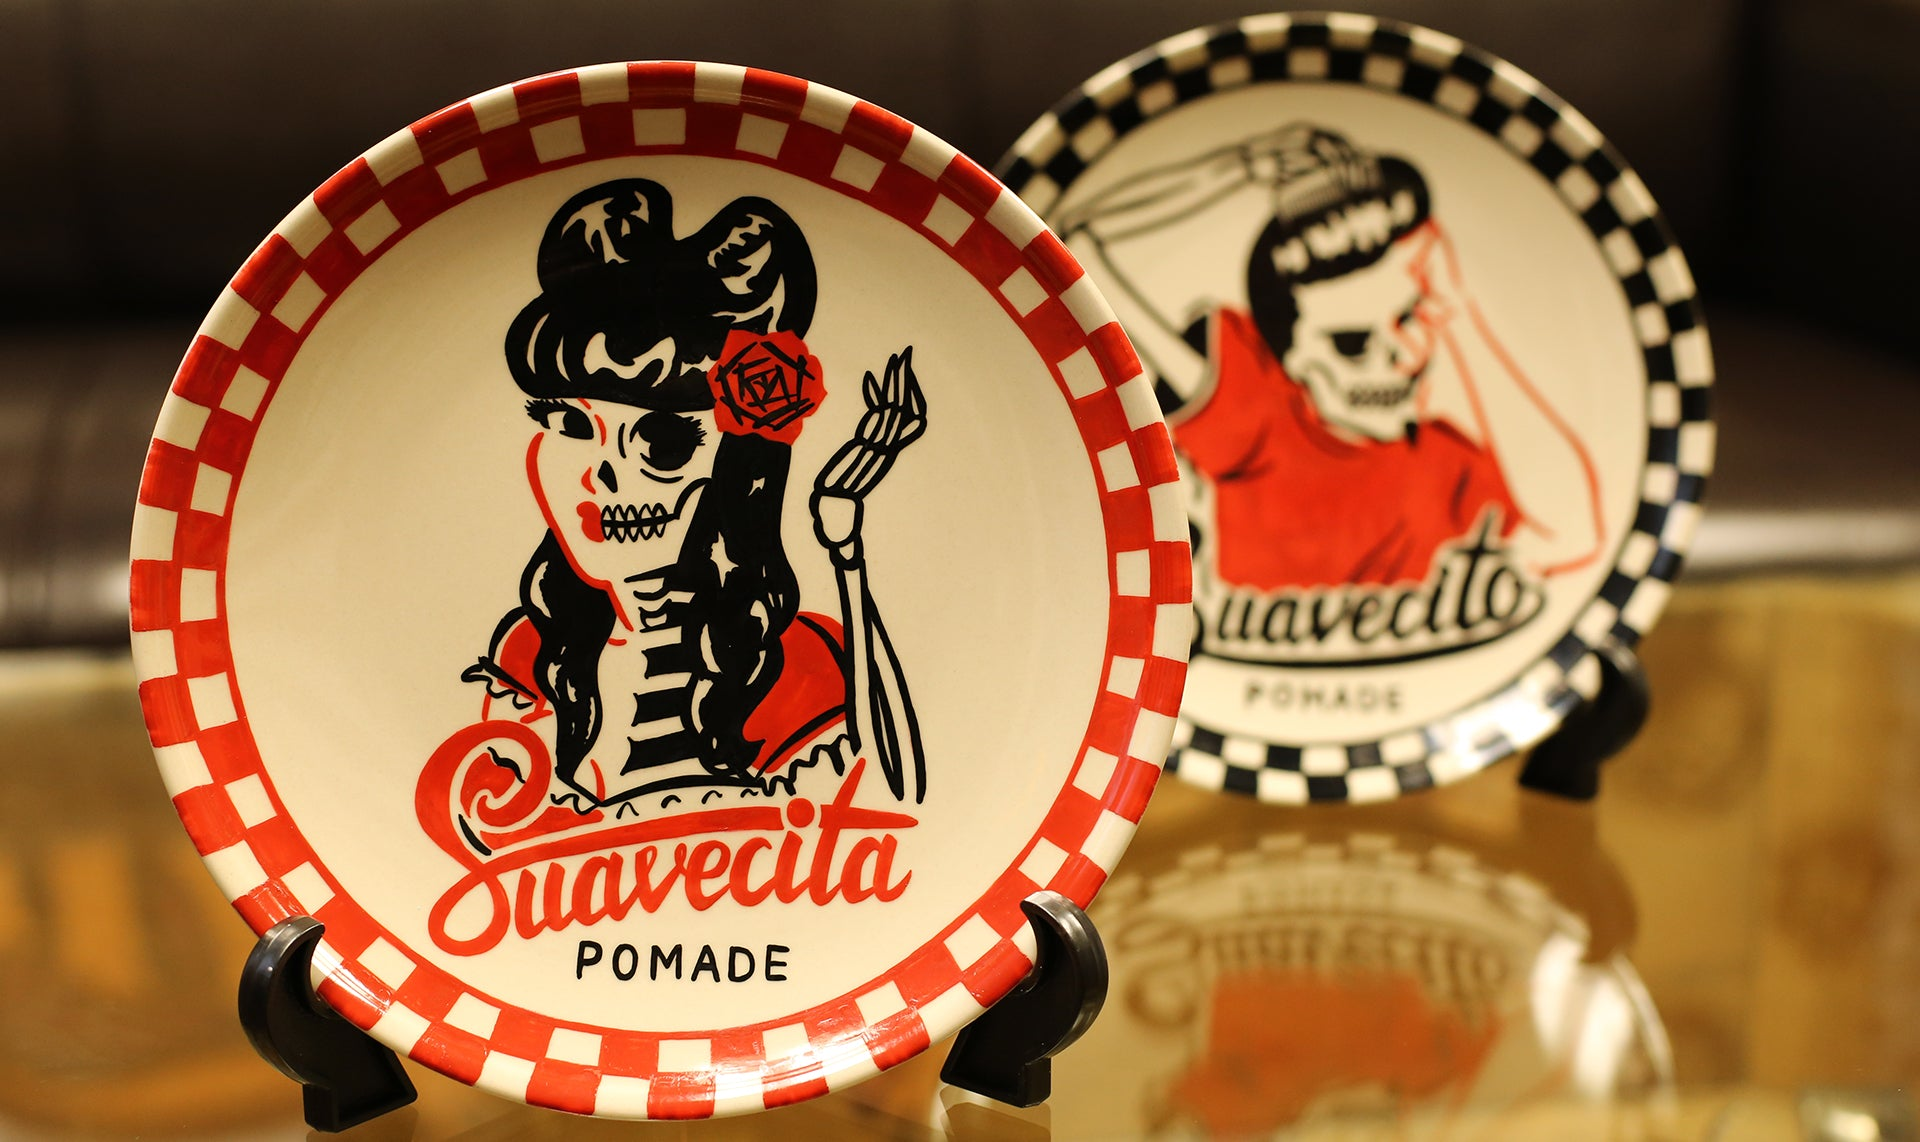 Suavecita plate custom by Lady Weird